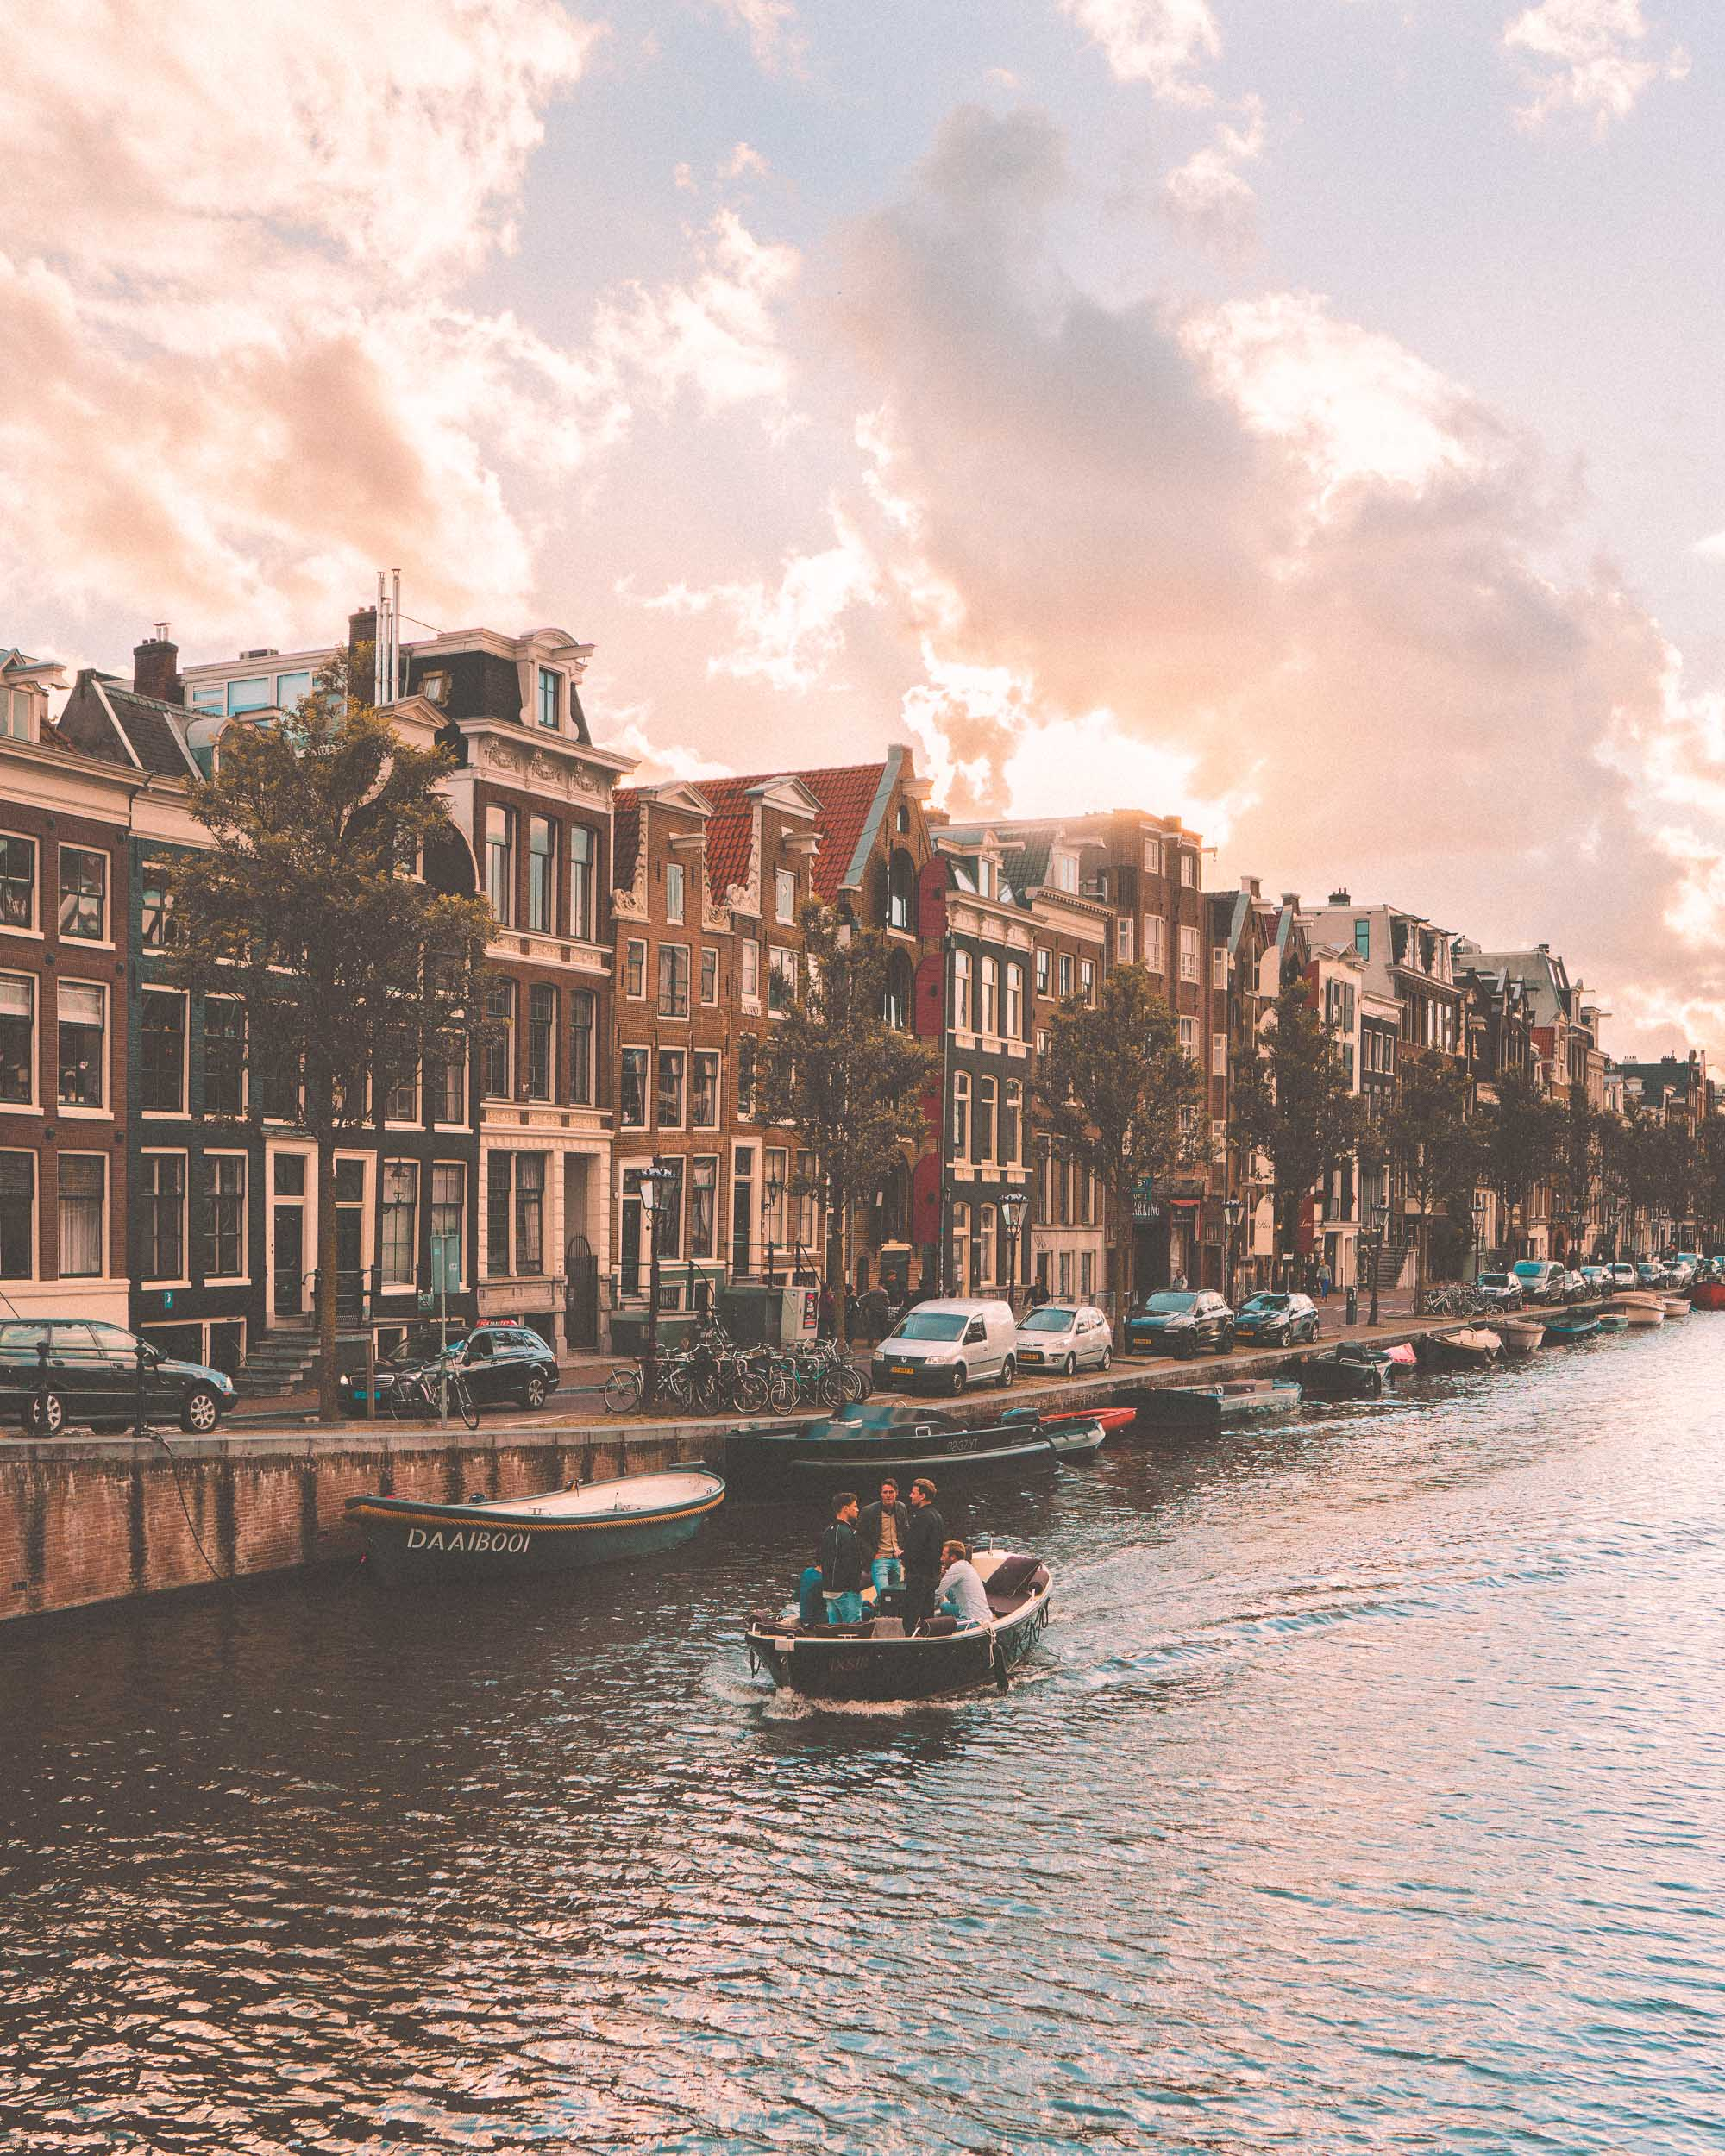 Sunset in Amsterdam over prinsengracht canal with boats in summer, The Netherlands